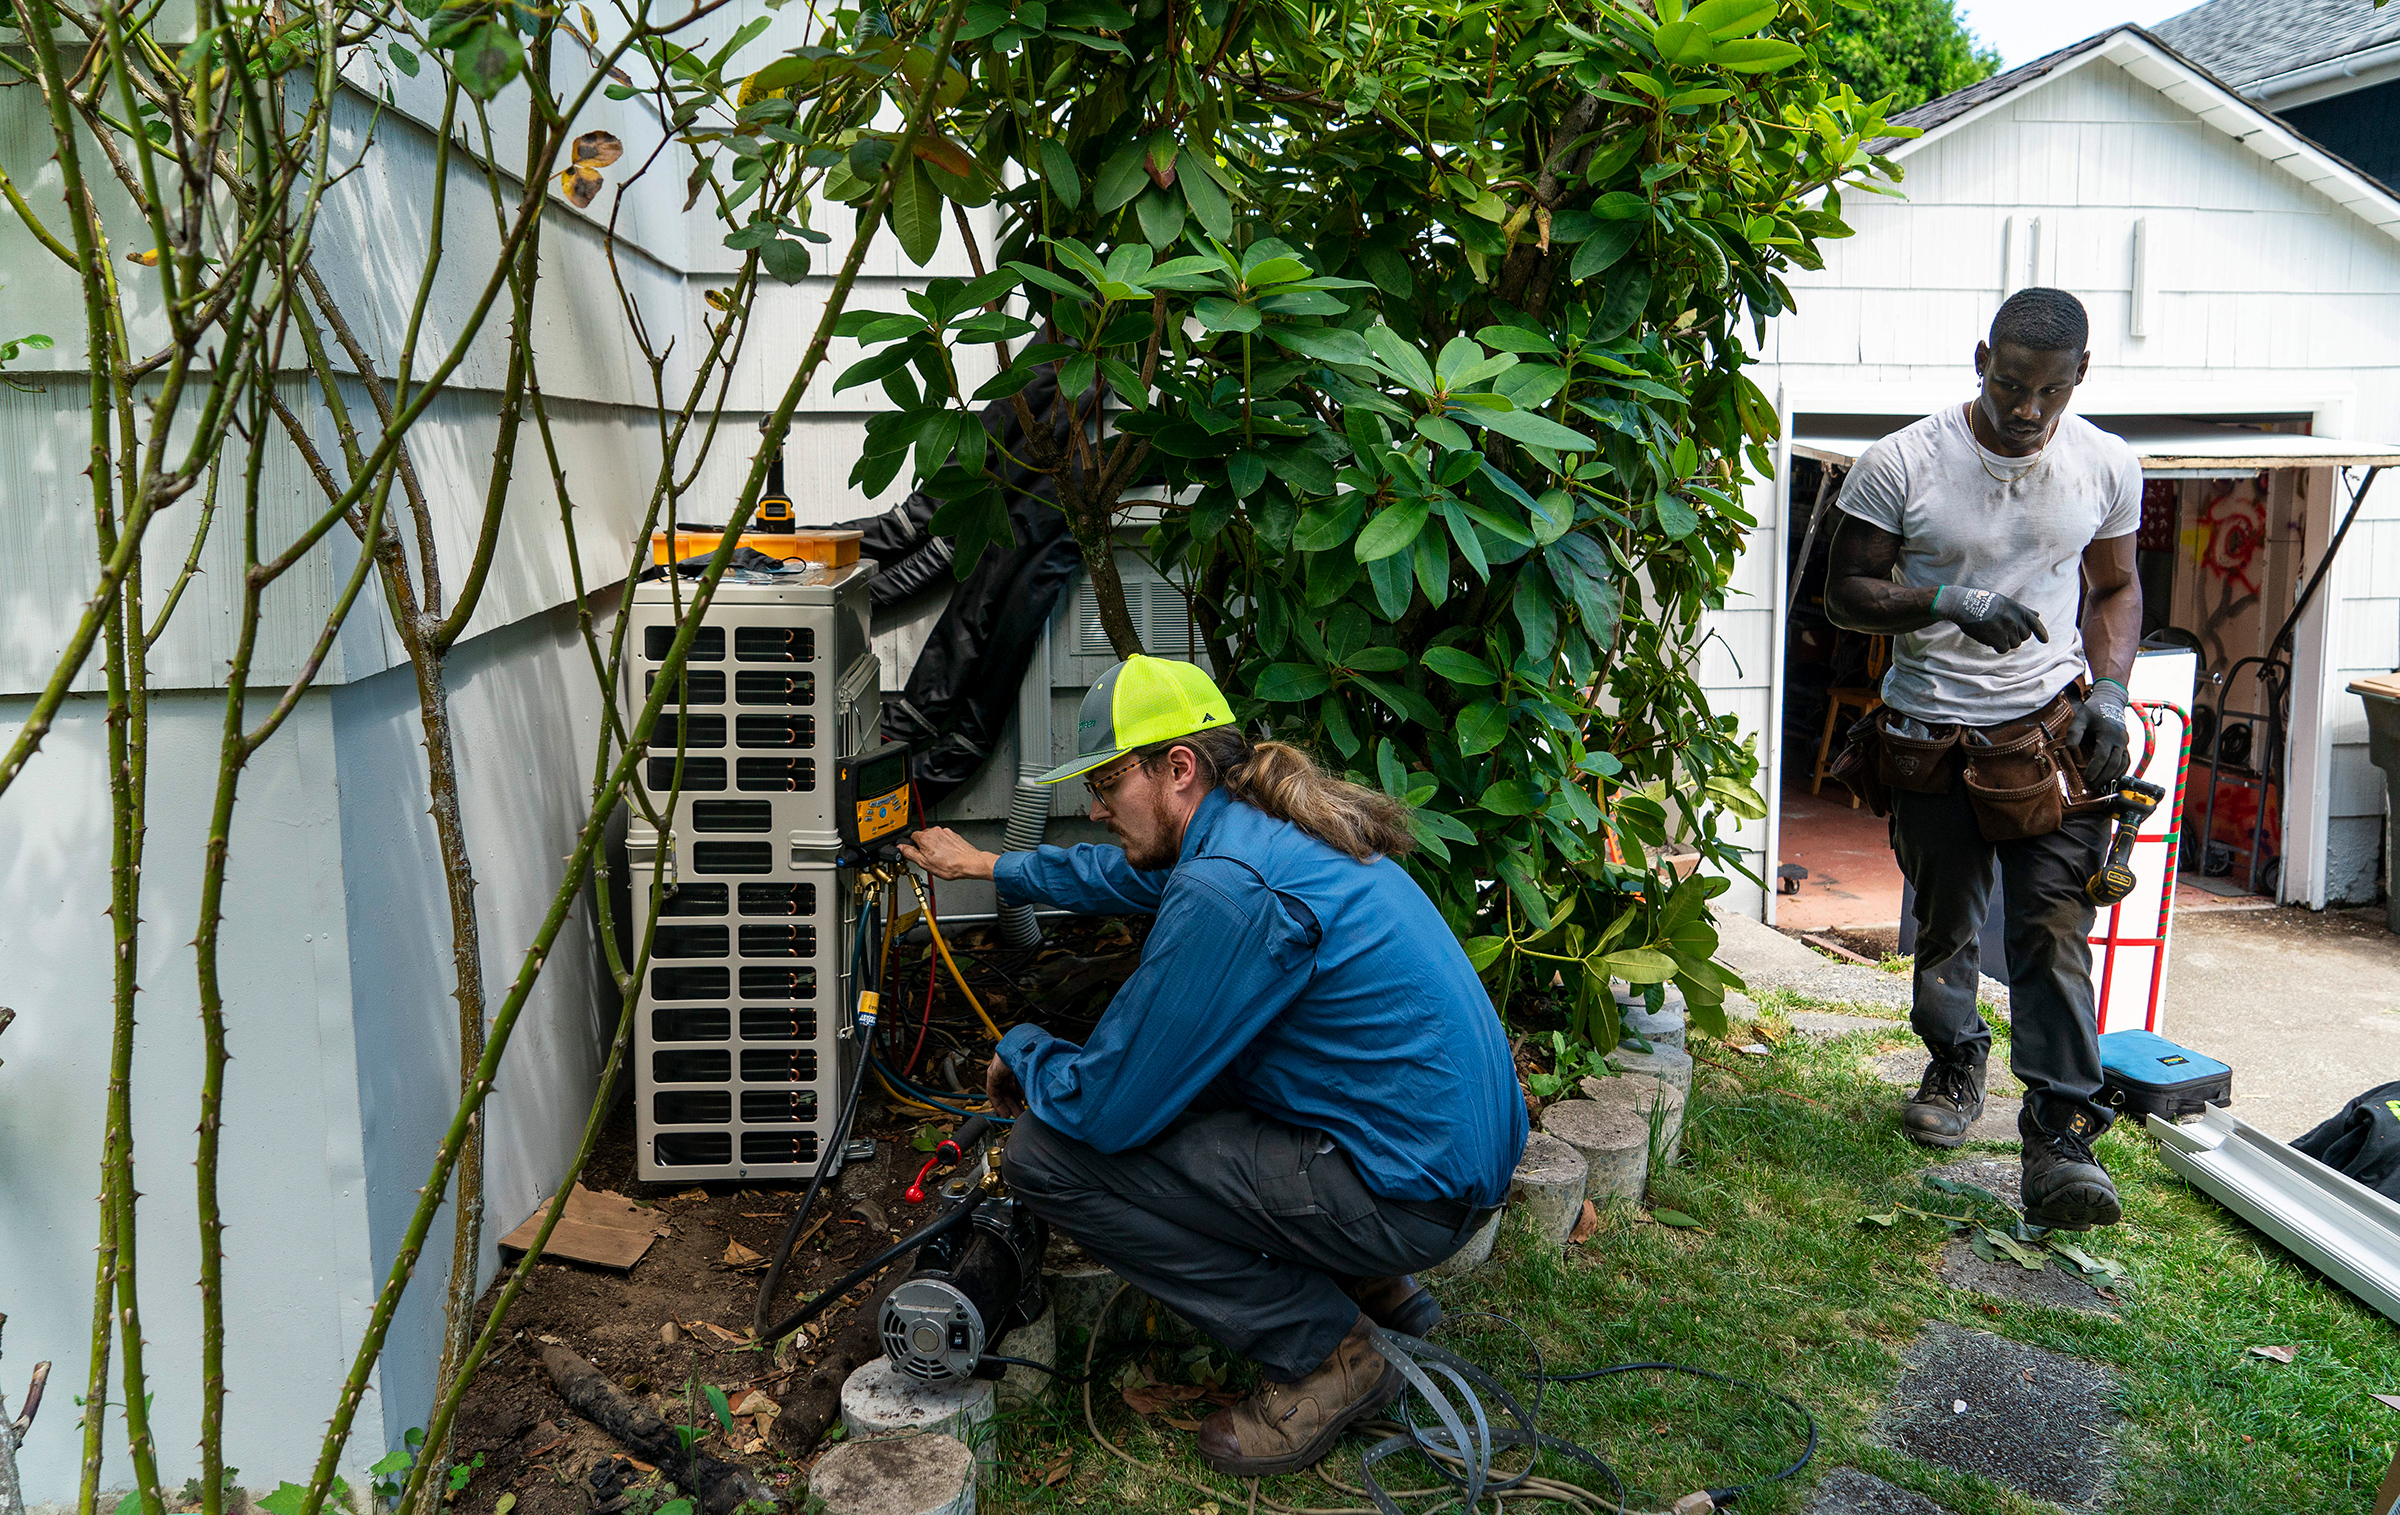 Luke Peters, left, and Elliott Thomas install a mini-split heating and air conditioning system at a home in Seattle on June 23, 2021. A heat wave soon set records across the region.